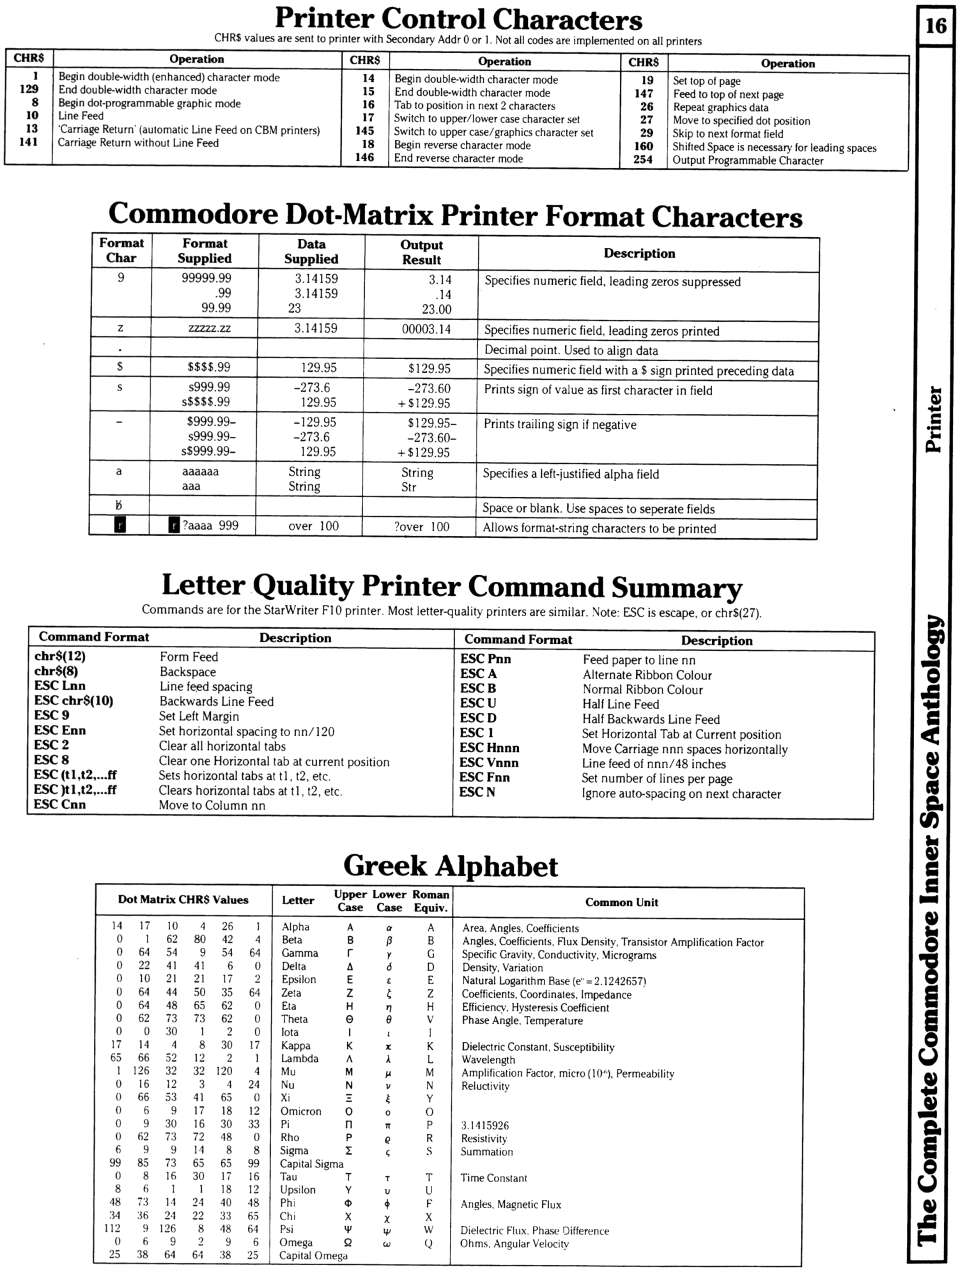 [960�1272 Printer Section: Matrix Printer Control Characters, Matrix Printer Format Characters, Letter Quality Printer Commands, Greek Alphabet Characters]